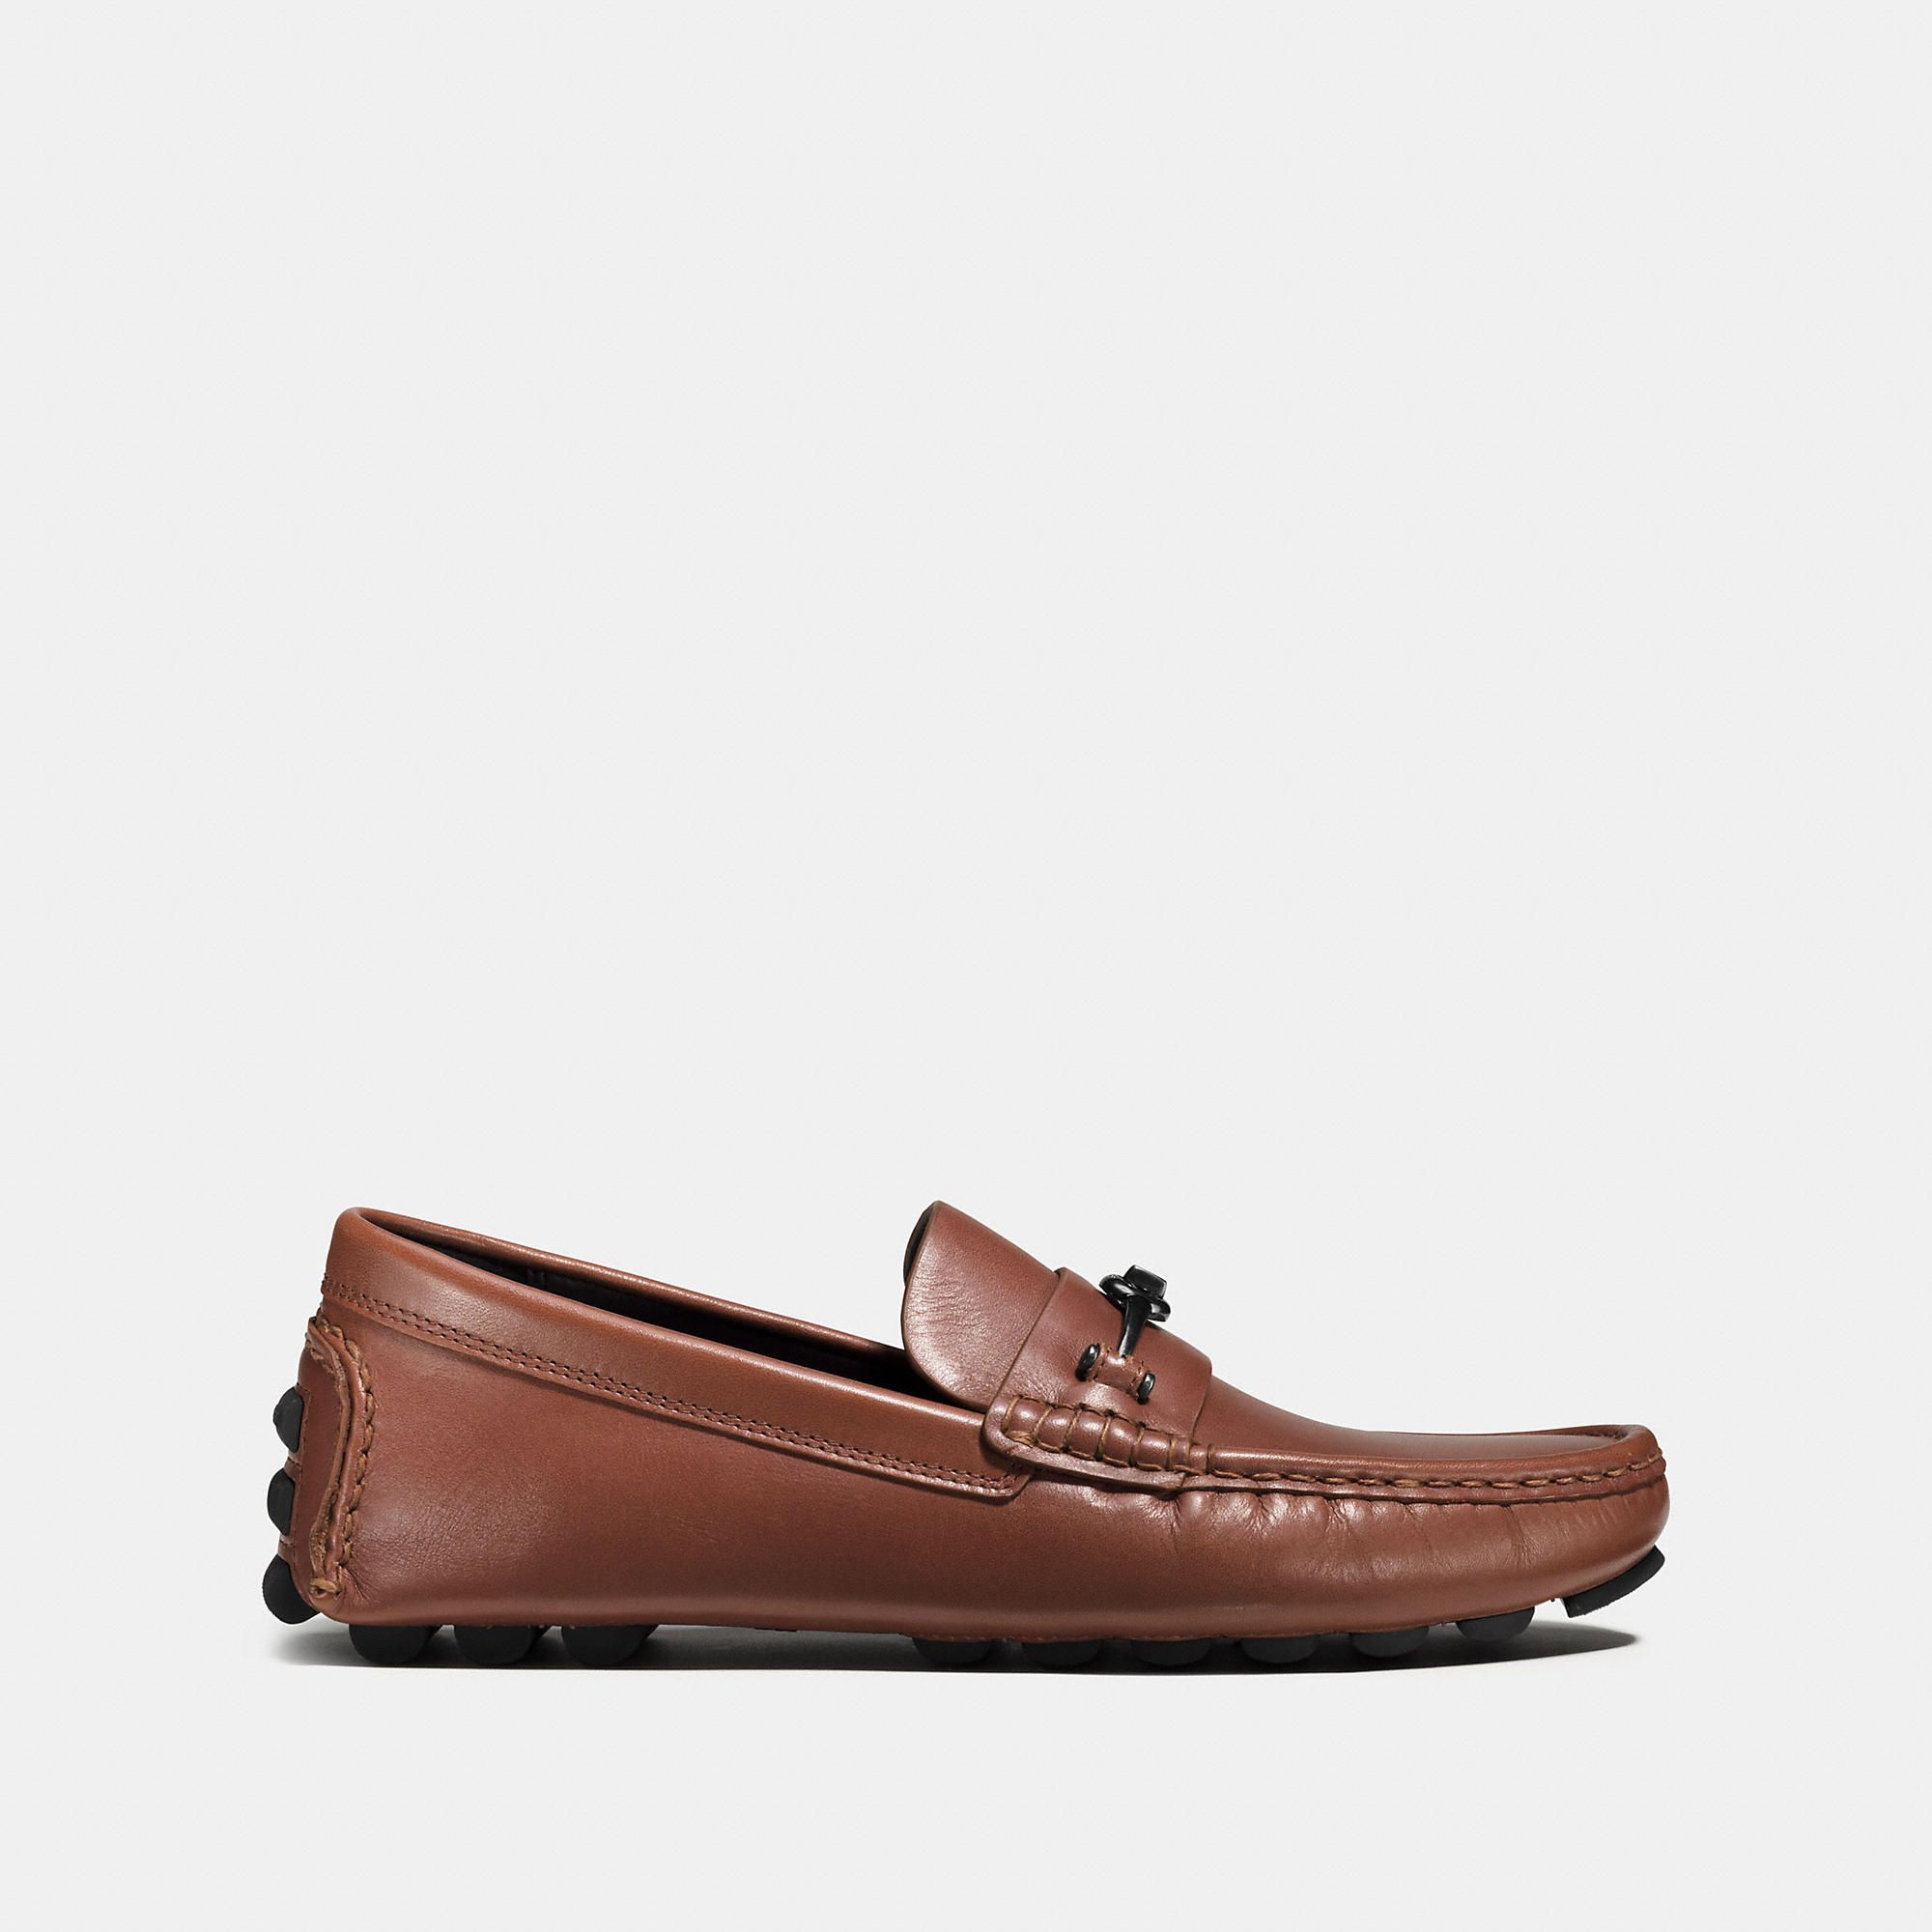 02bac4f99f5 COACH Men s Crosby Turnlock Driver Size 11.5D Loafers